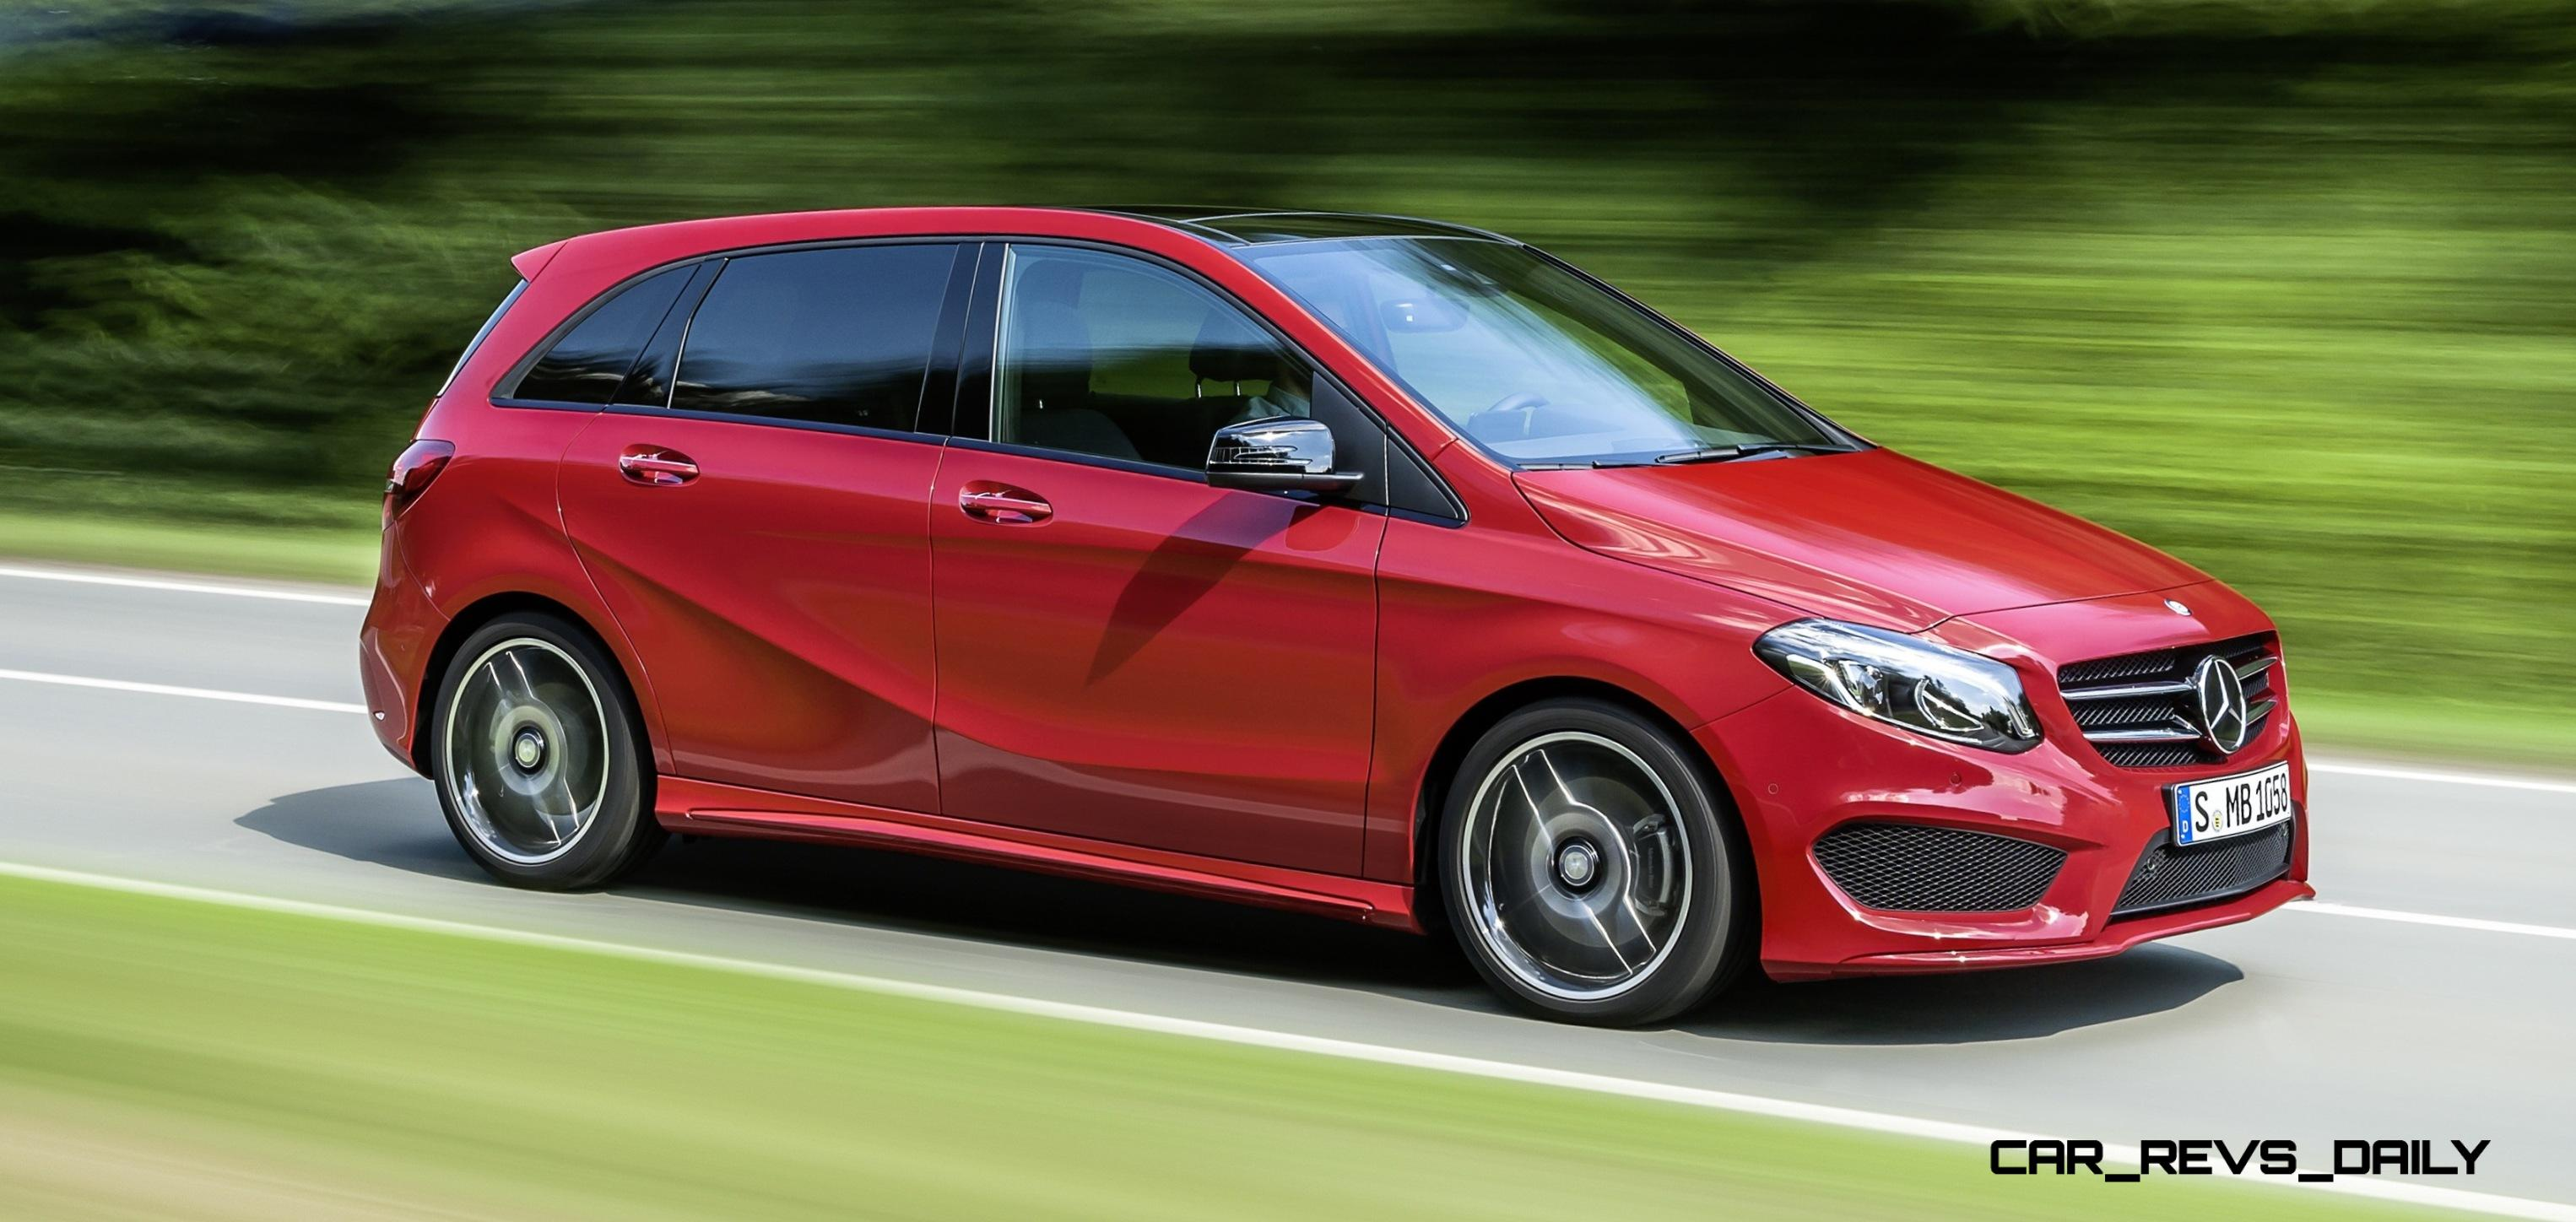 2015 mercedes benz b class makes uk debut with fresh style and tech. Black Bedroom Furniture Sets. Home Design Ideas